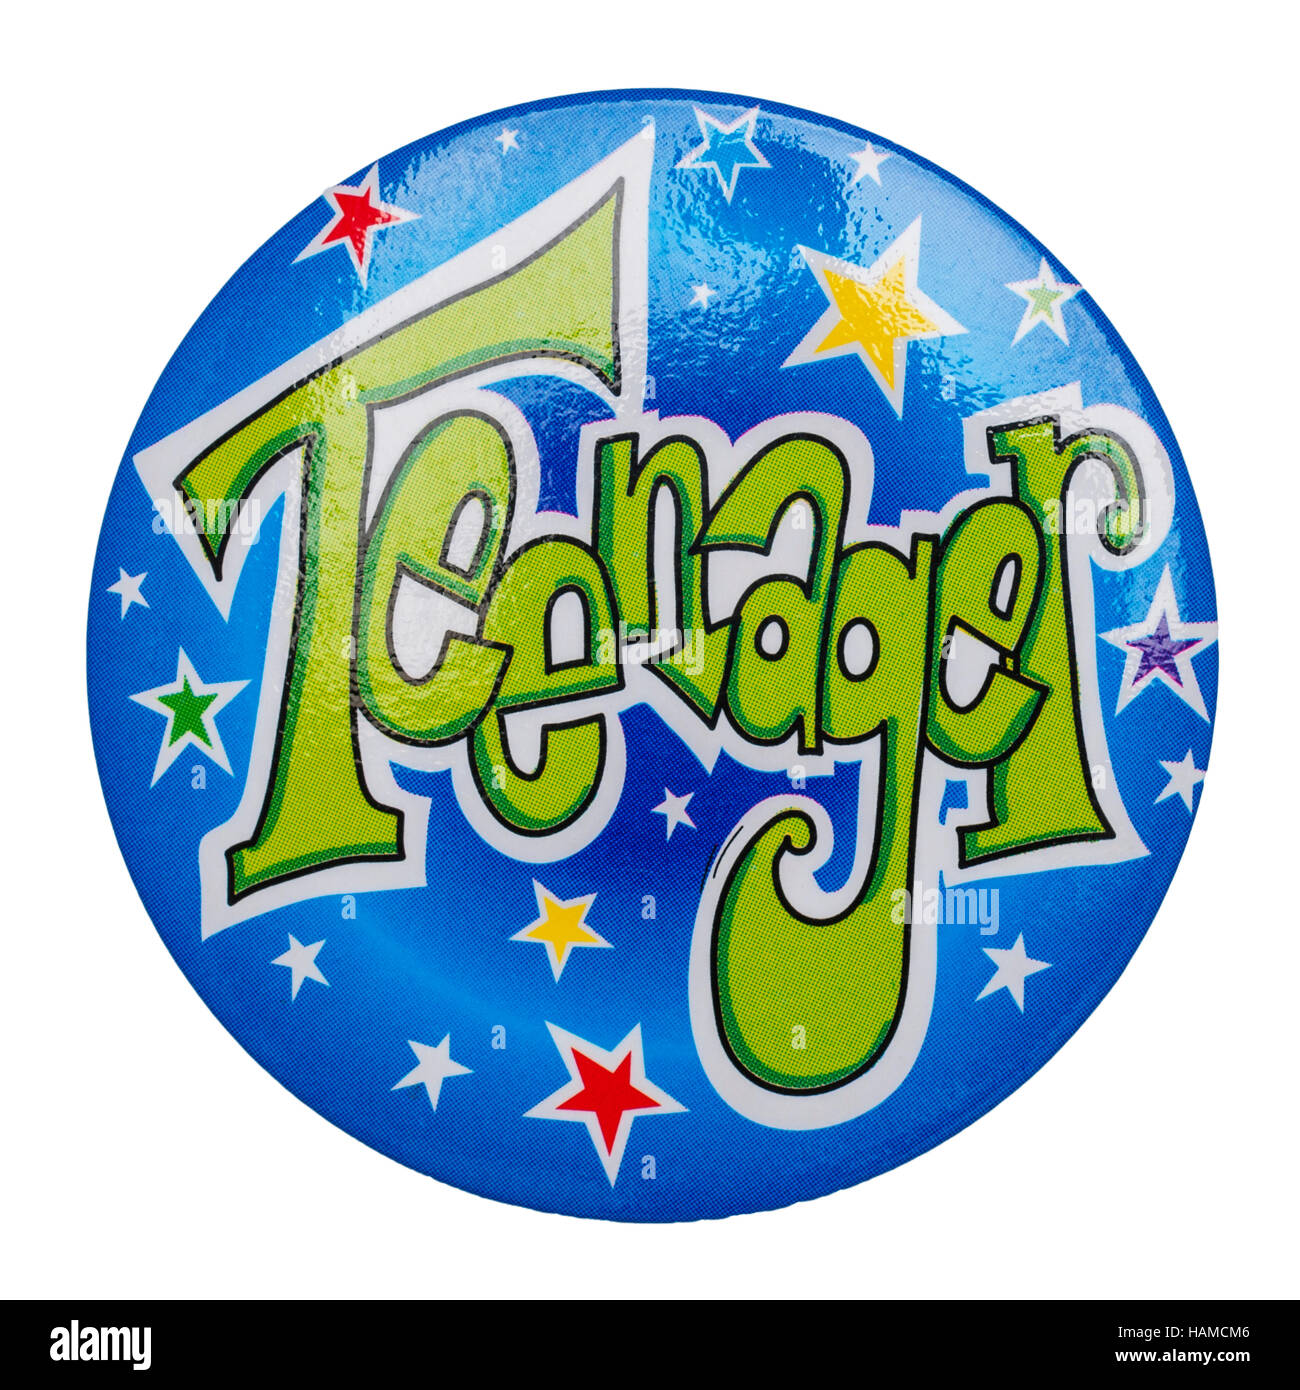 A Teenager badge on a white background - Stock Image